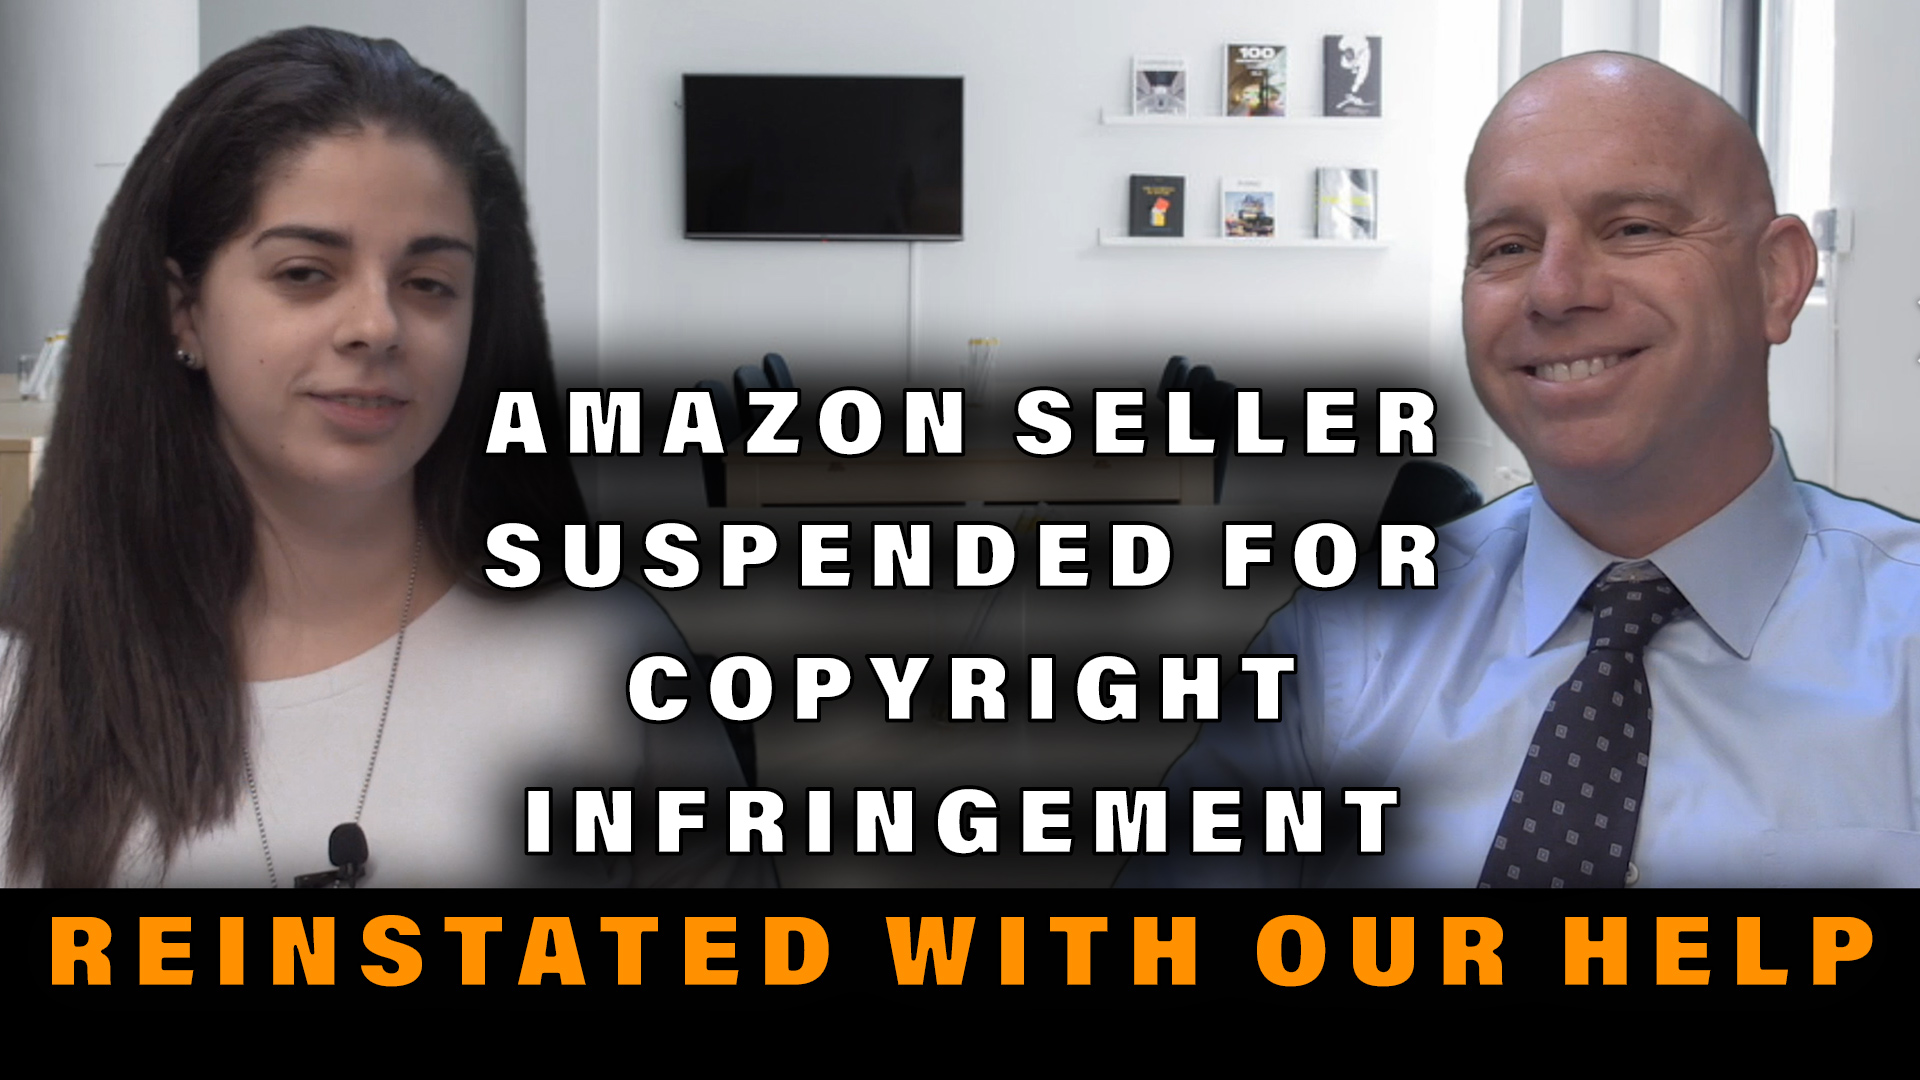 Amazon Seller Suspended for Copyright Infringement – Now Reinstated